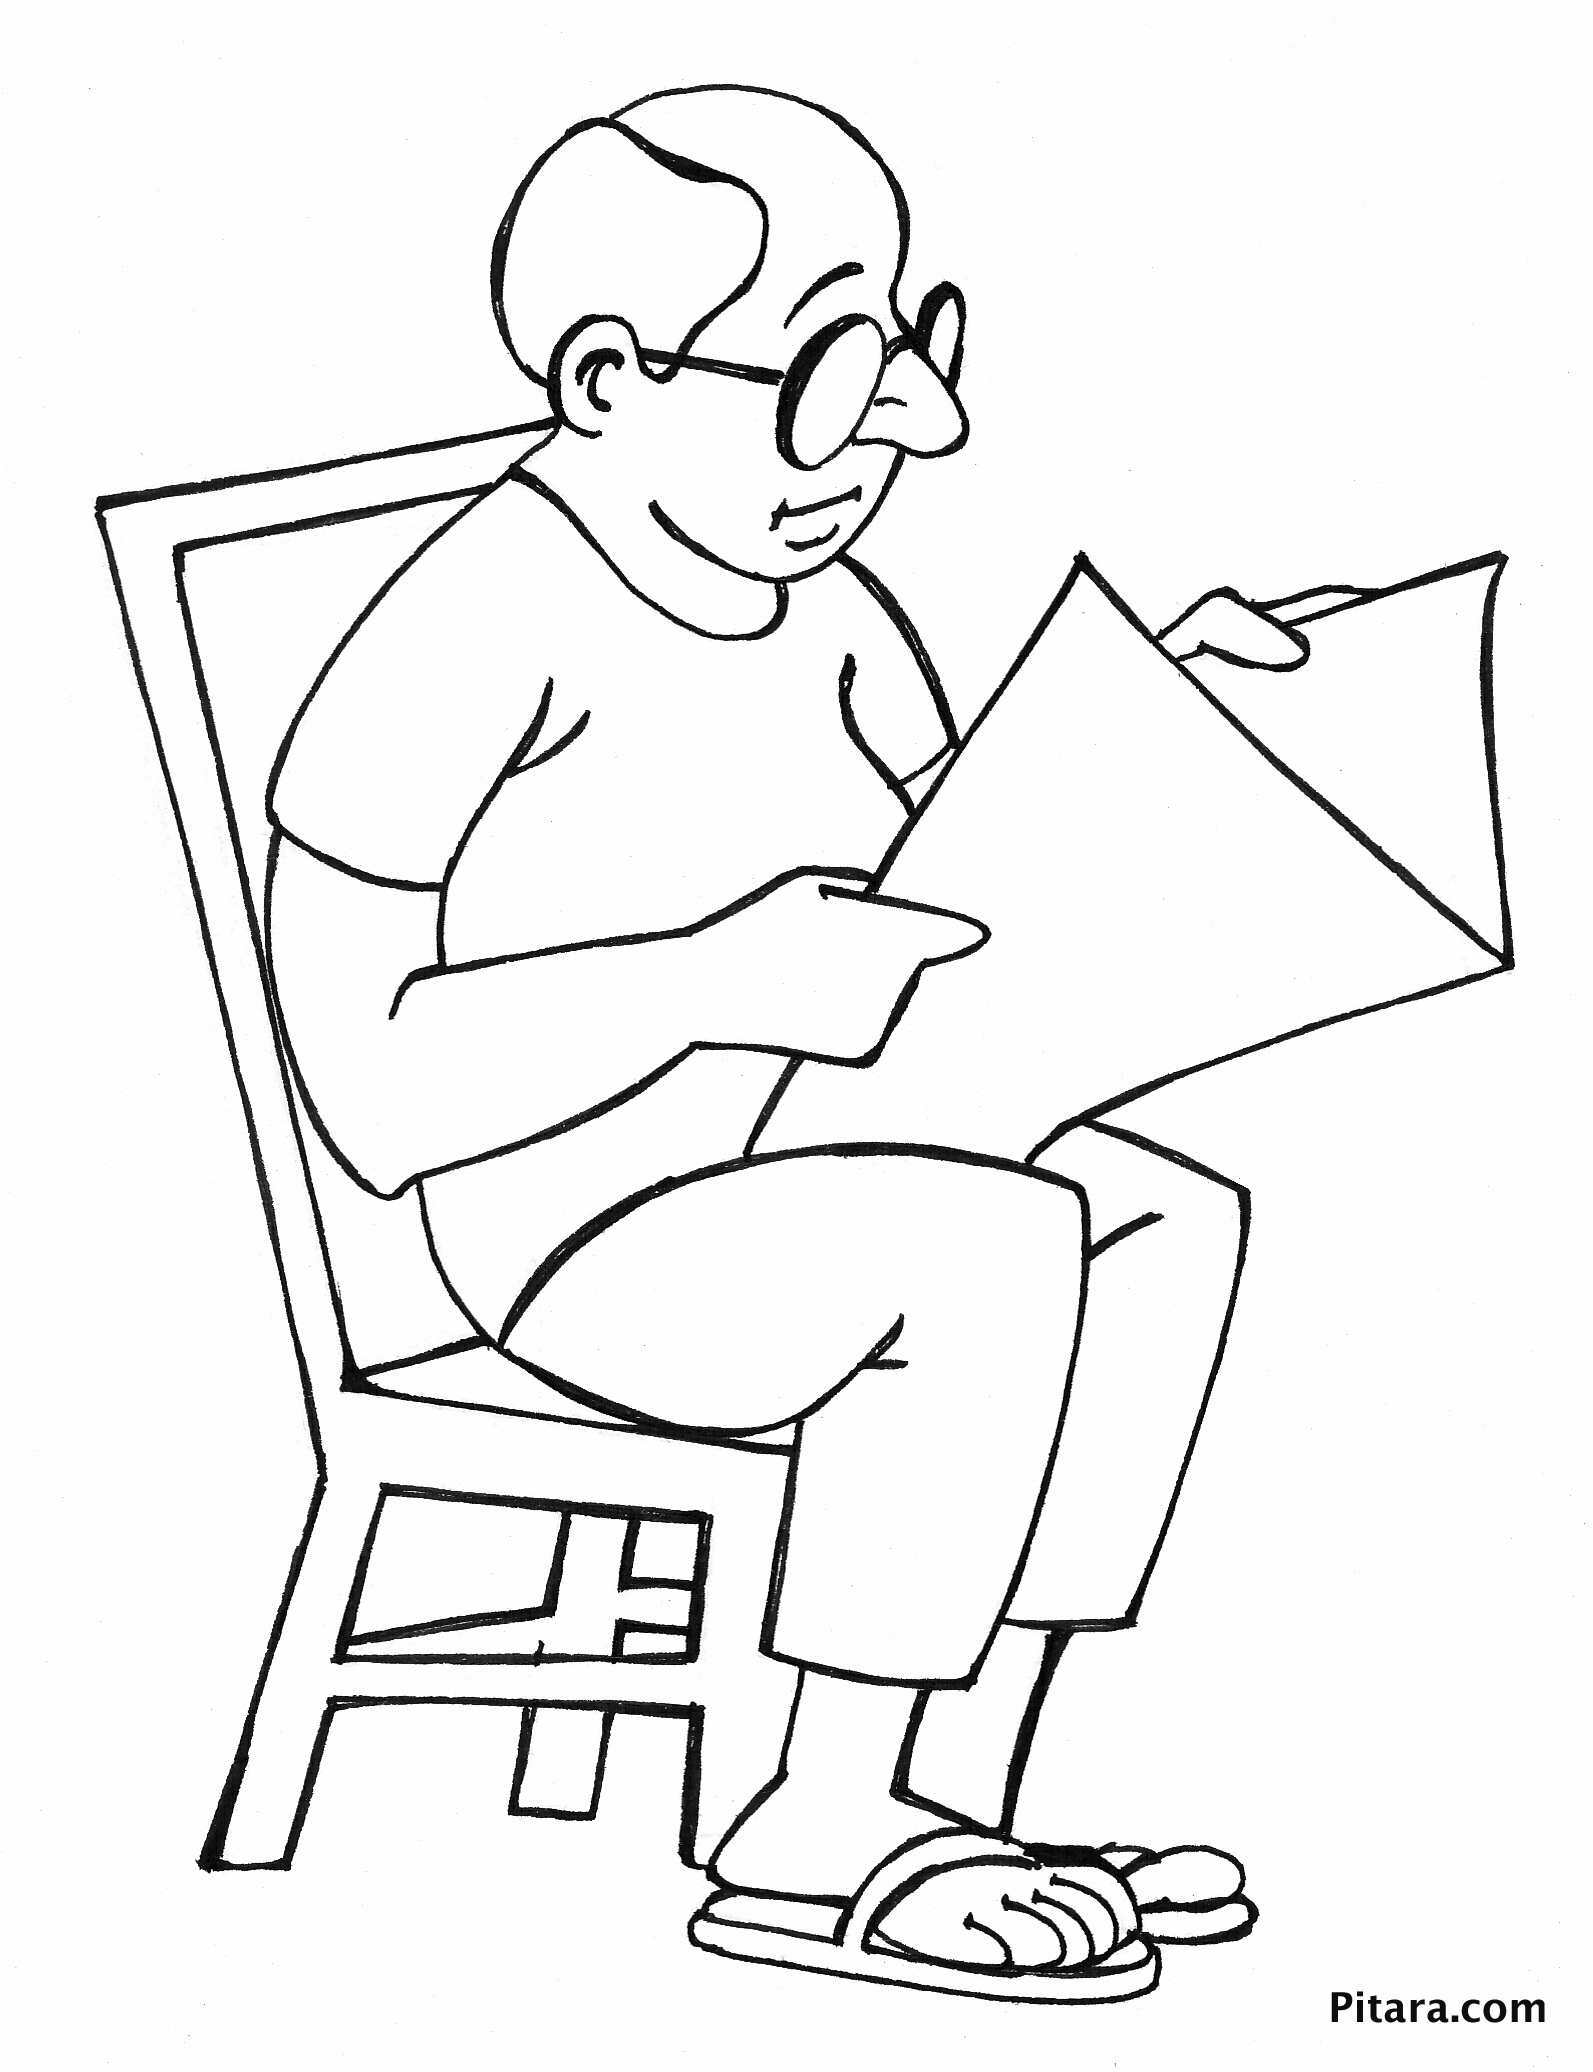 reading coloring worksheets reading newspaper coloring page pitara kids network reading worksheets coloring